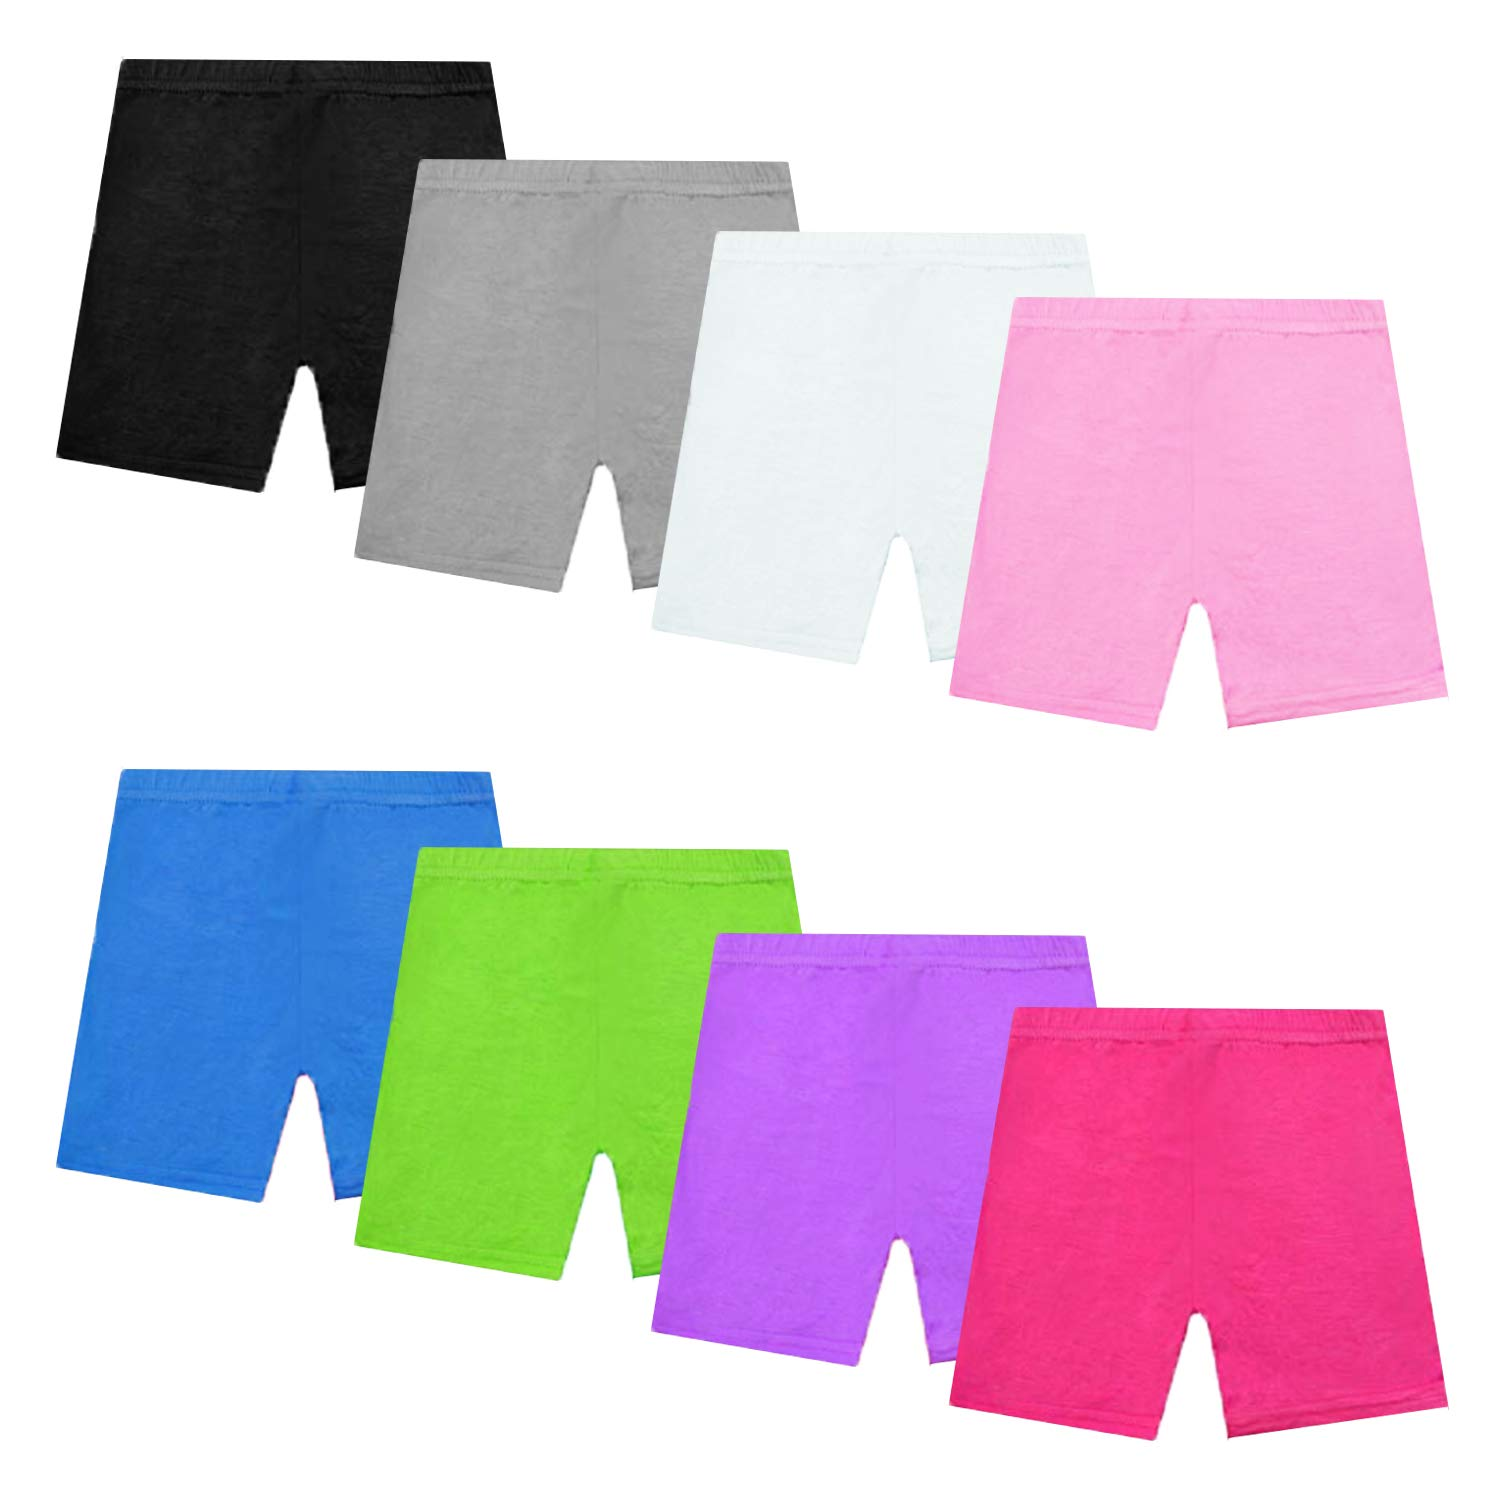 NEWITIN 8 Pack Dance Shorts Girls Bike Short Breathable Comfortable and Safety